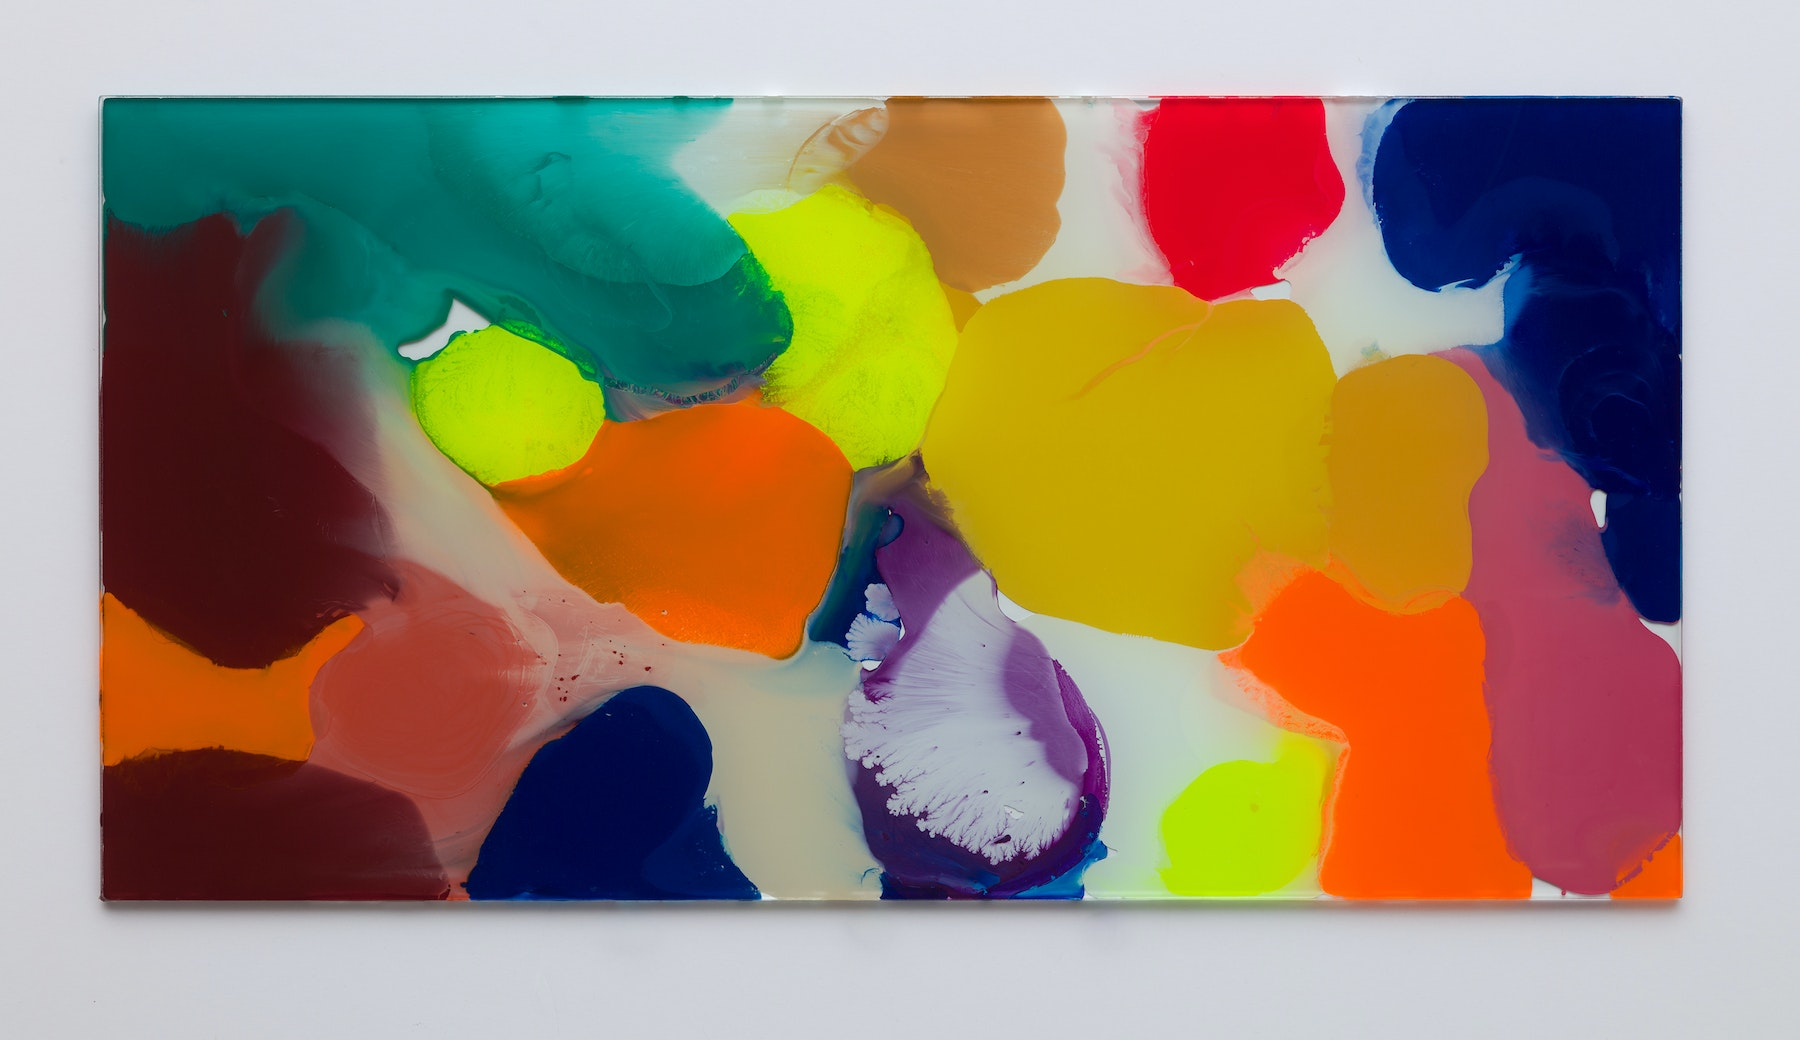 """Yunhee Min """"Up Close in Distance Study (variation study a3),"""" 2018 Enamel on laminated glass 18.5 x 36.5"""" [HxW] (46.99 x 92.71 cm) Inventory #MIN337 Courtesy of the artist and Vielmetter Los Angeles Photo credit: Brica Wilcox"""